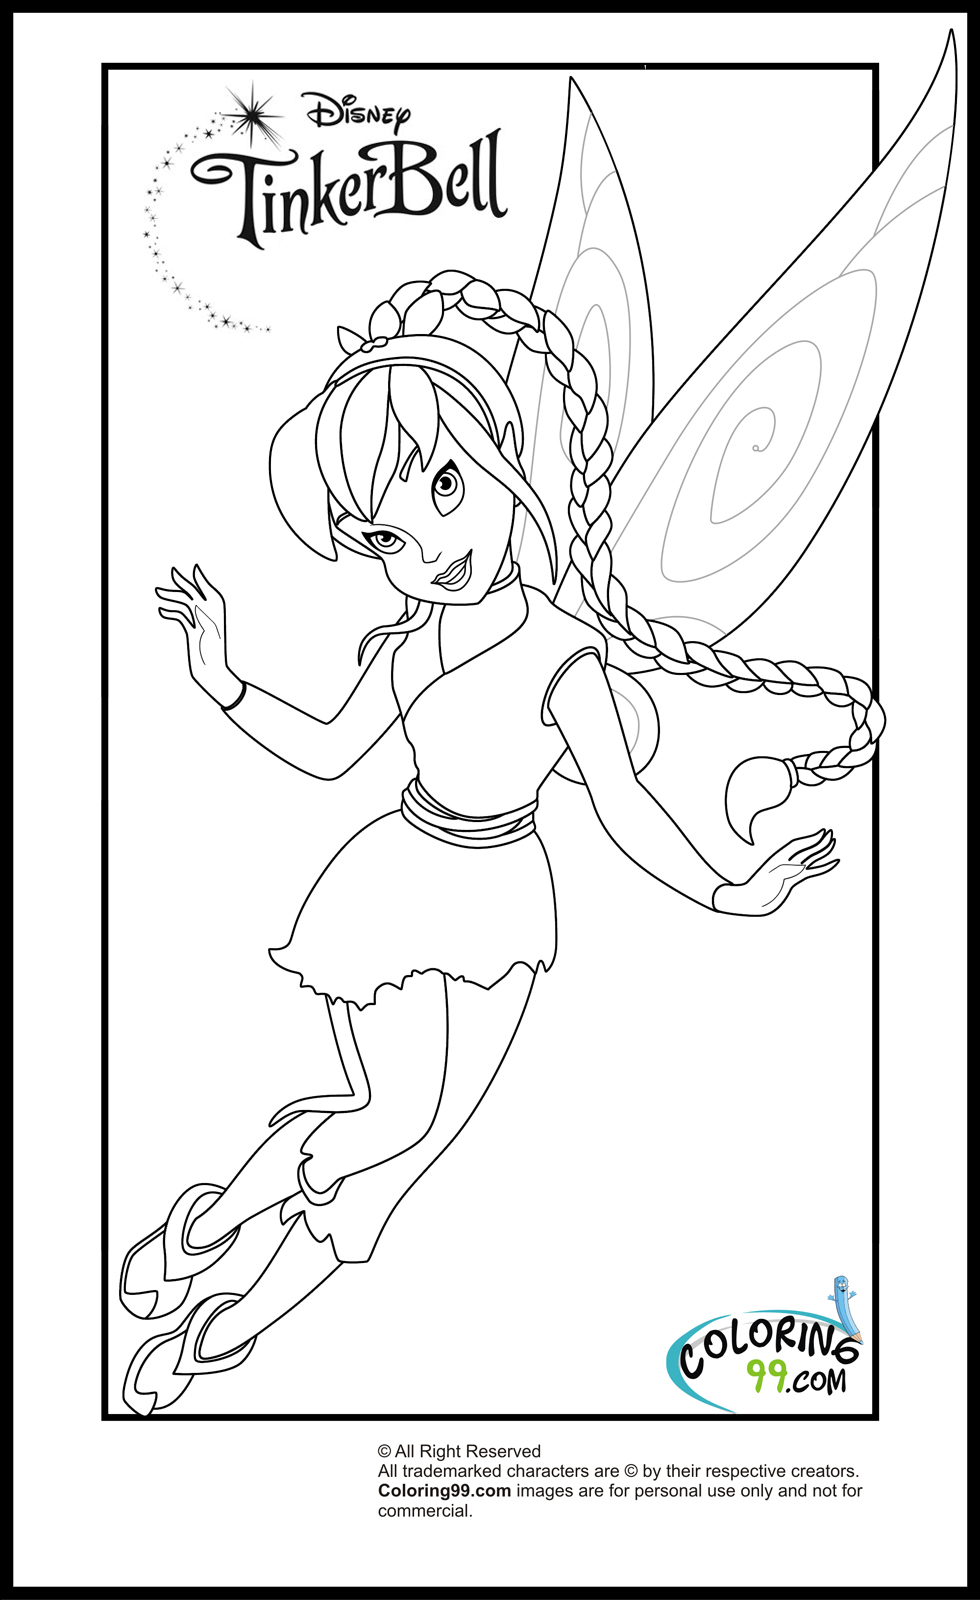 tinkerbell for coloring fairytinkcoloring3gif 11131422 tinkerbell coloring coloring for tinkerbell